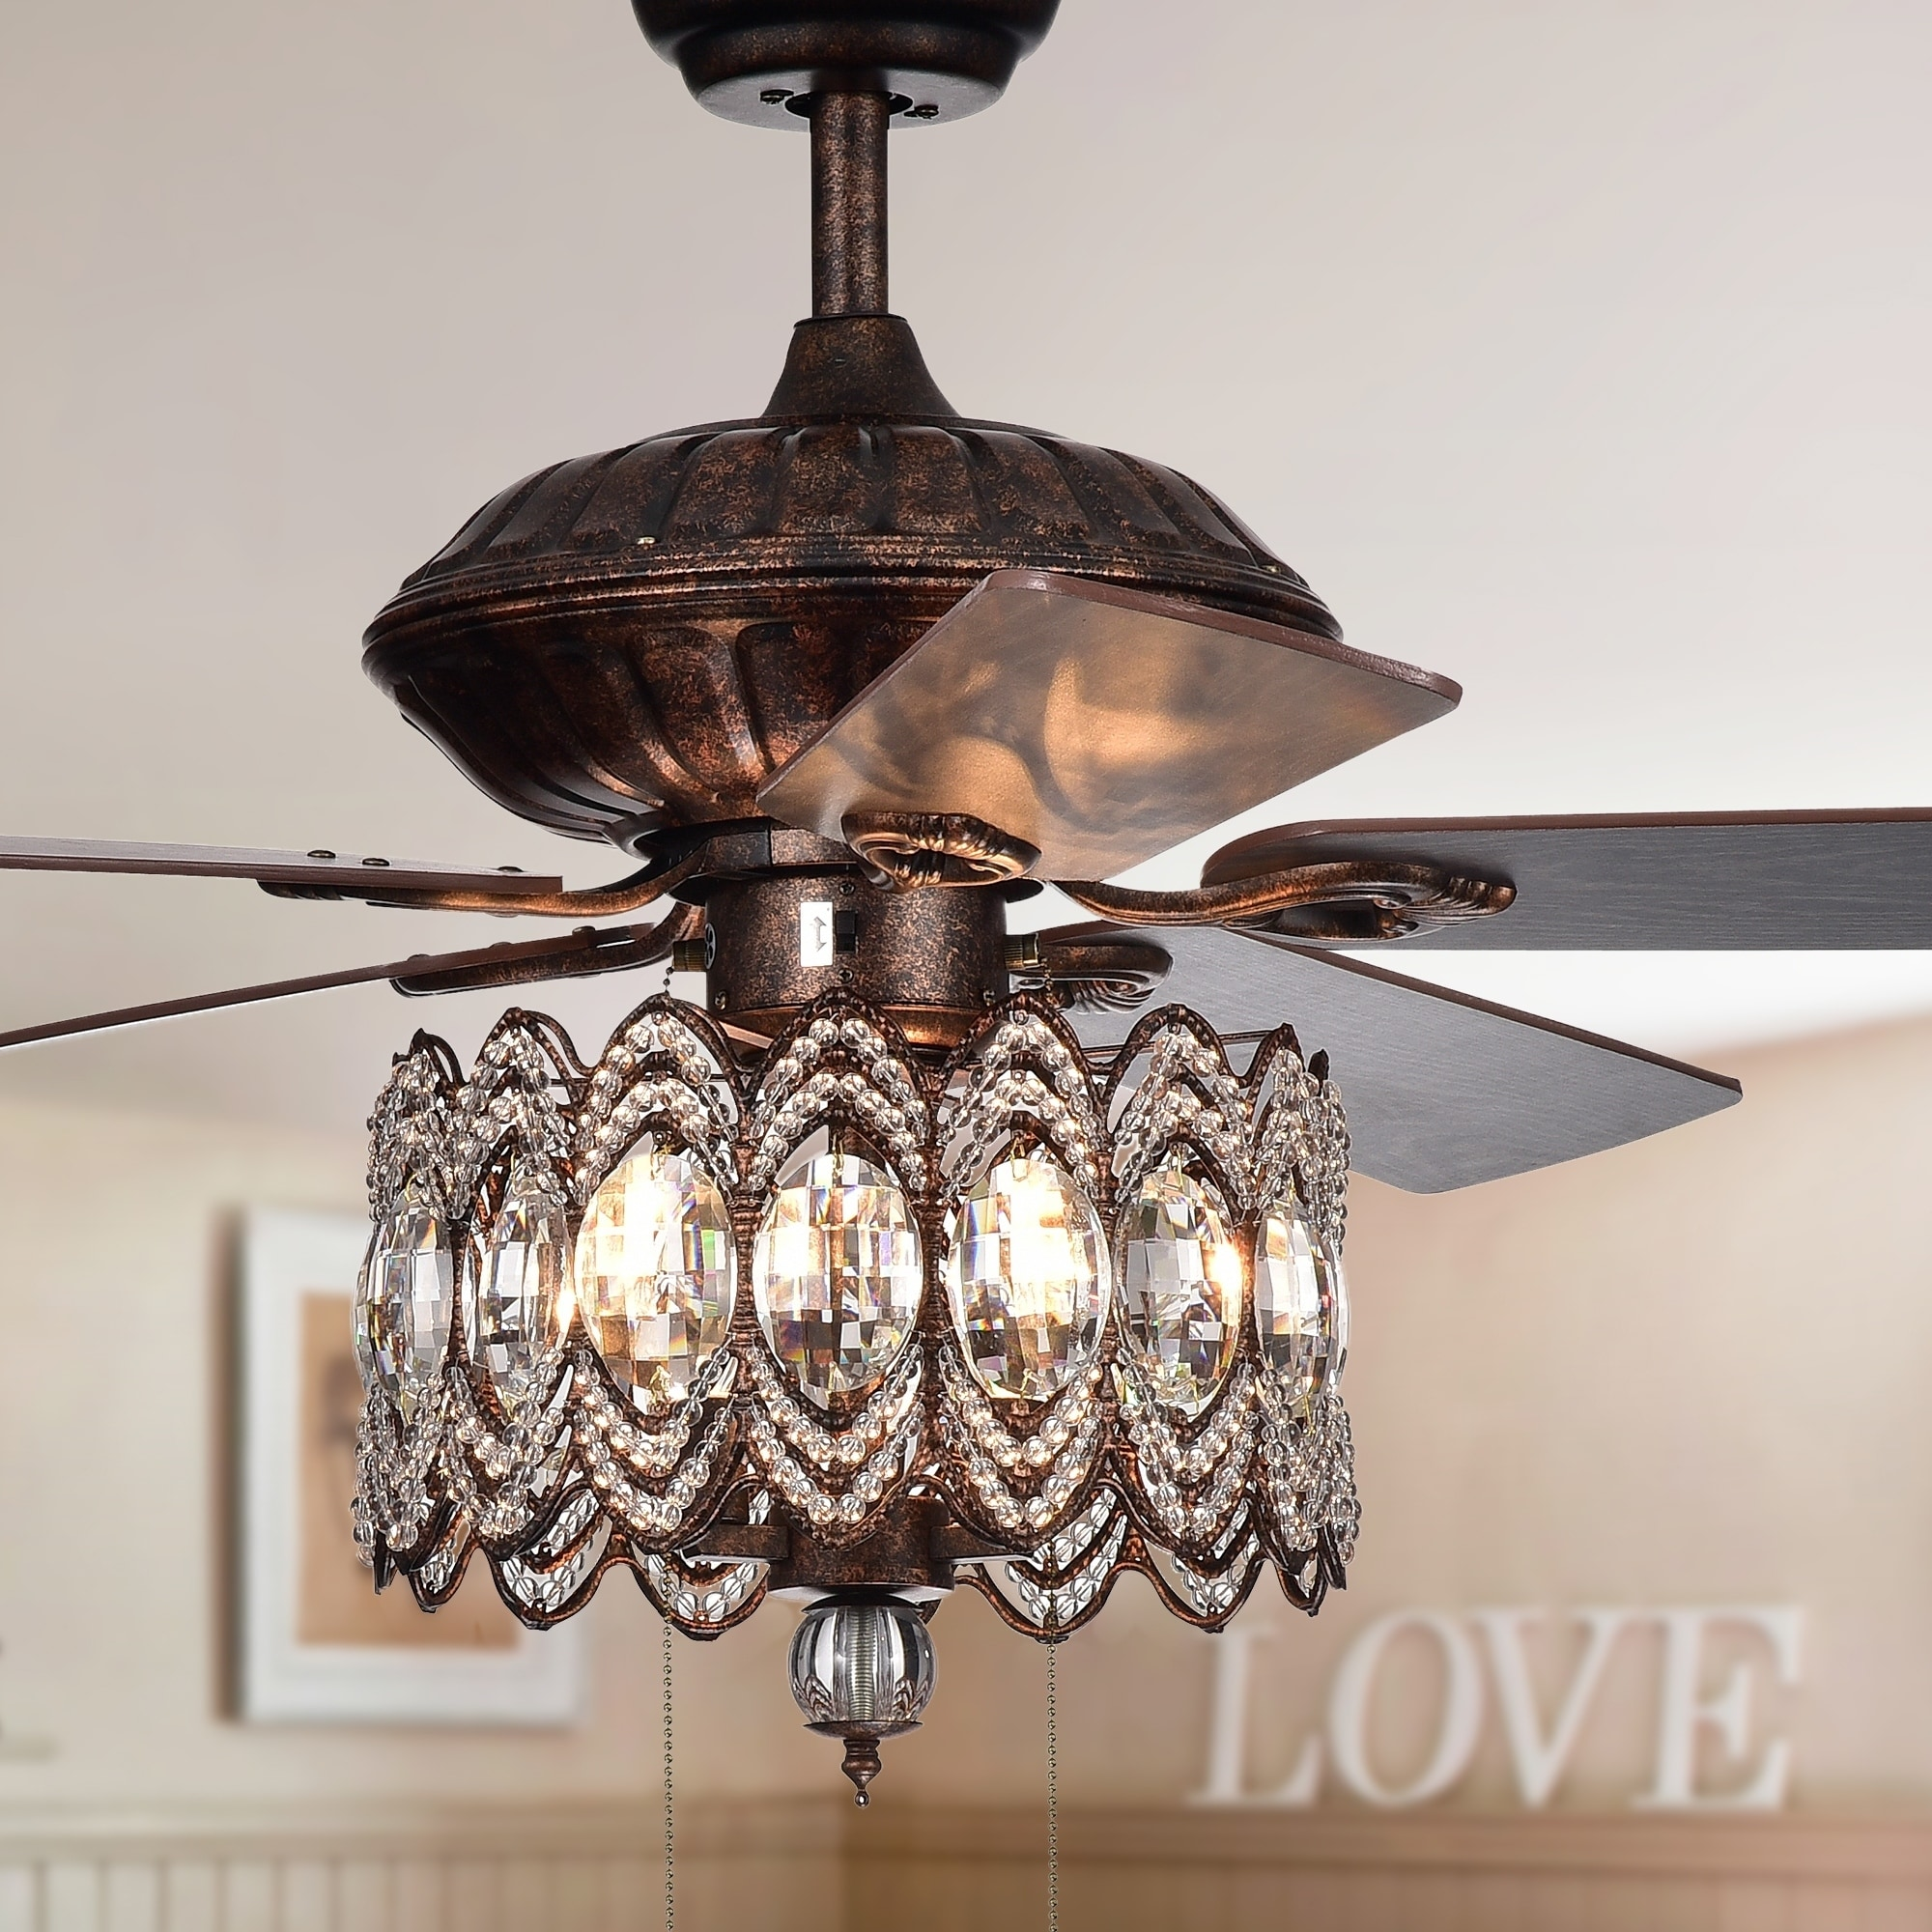 Ceiling Fan With Chandelier Light: Mariposa 52-inch Rustic Bronze Chandelier Ceiling Fan Wtih